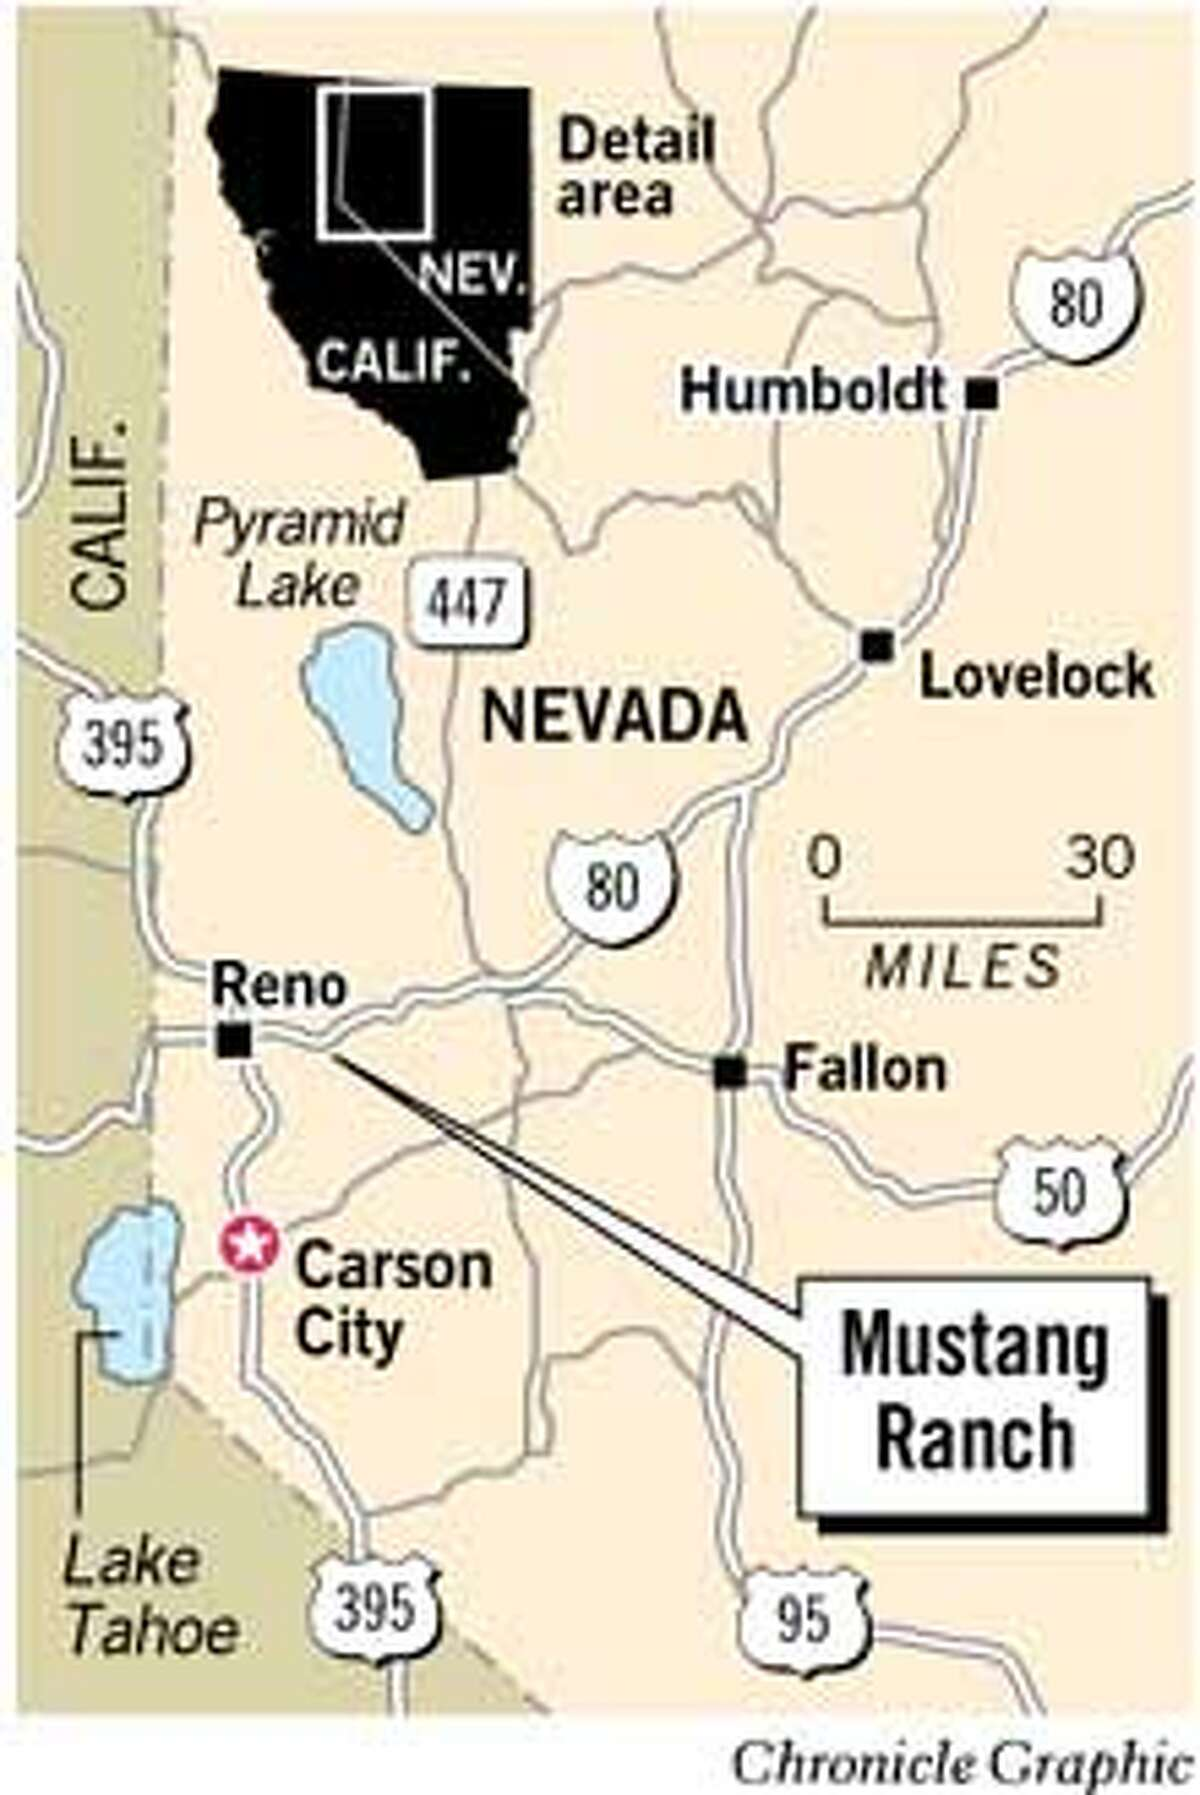 Deserts allure may replace Mustang Ranchs charms / Ex